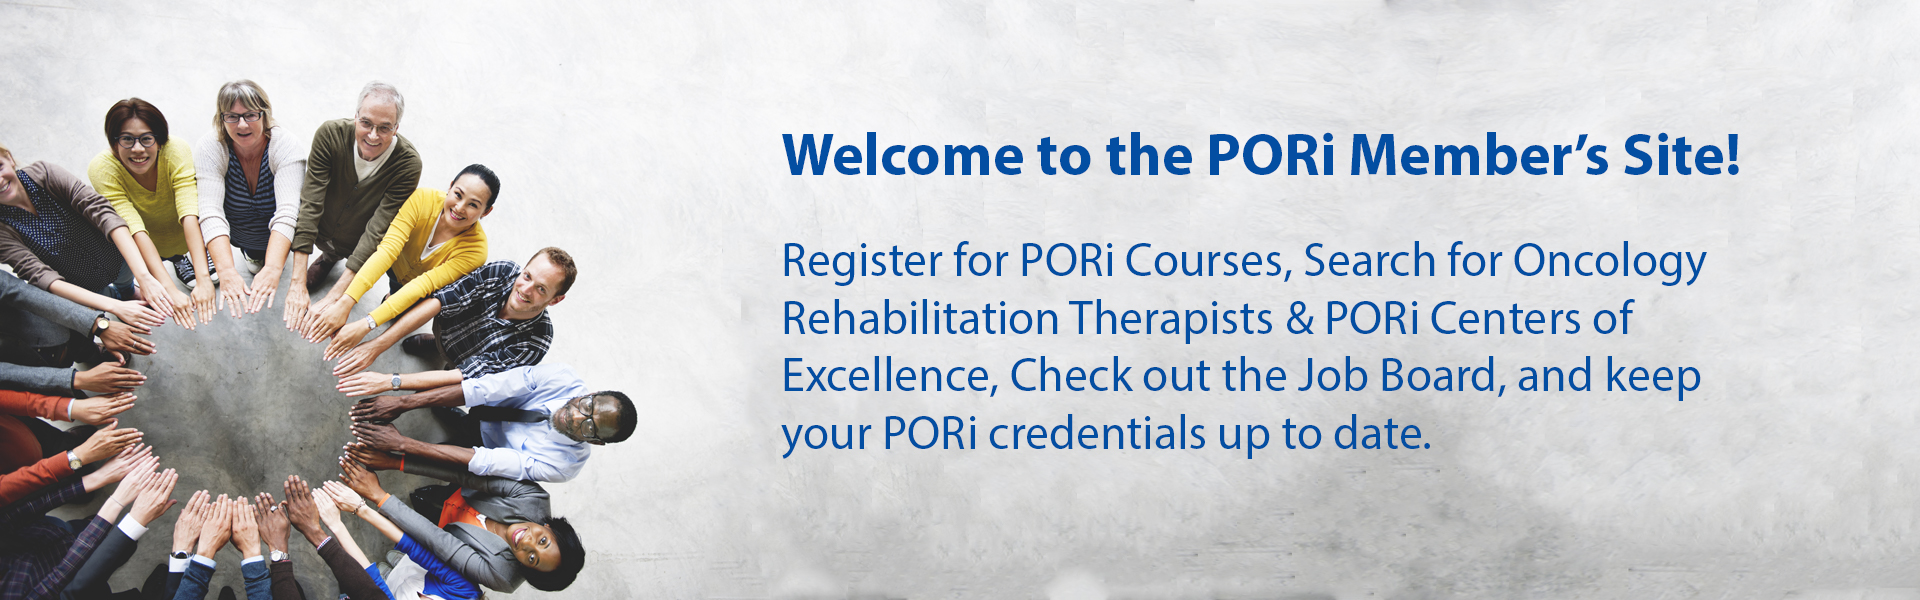 Welcome to PORi Member's Site